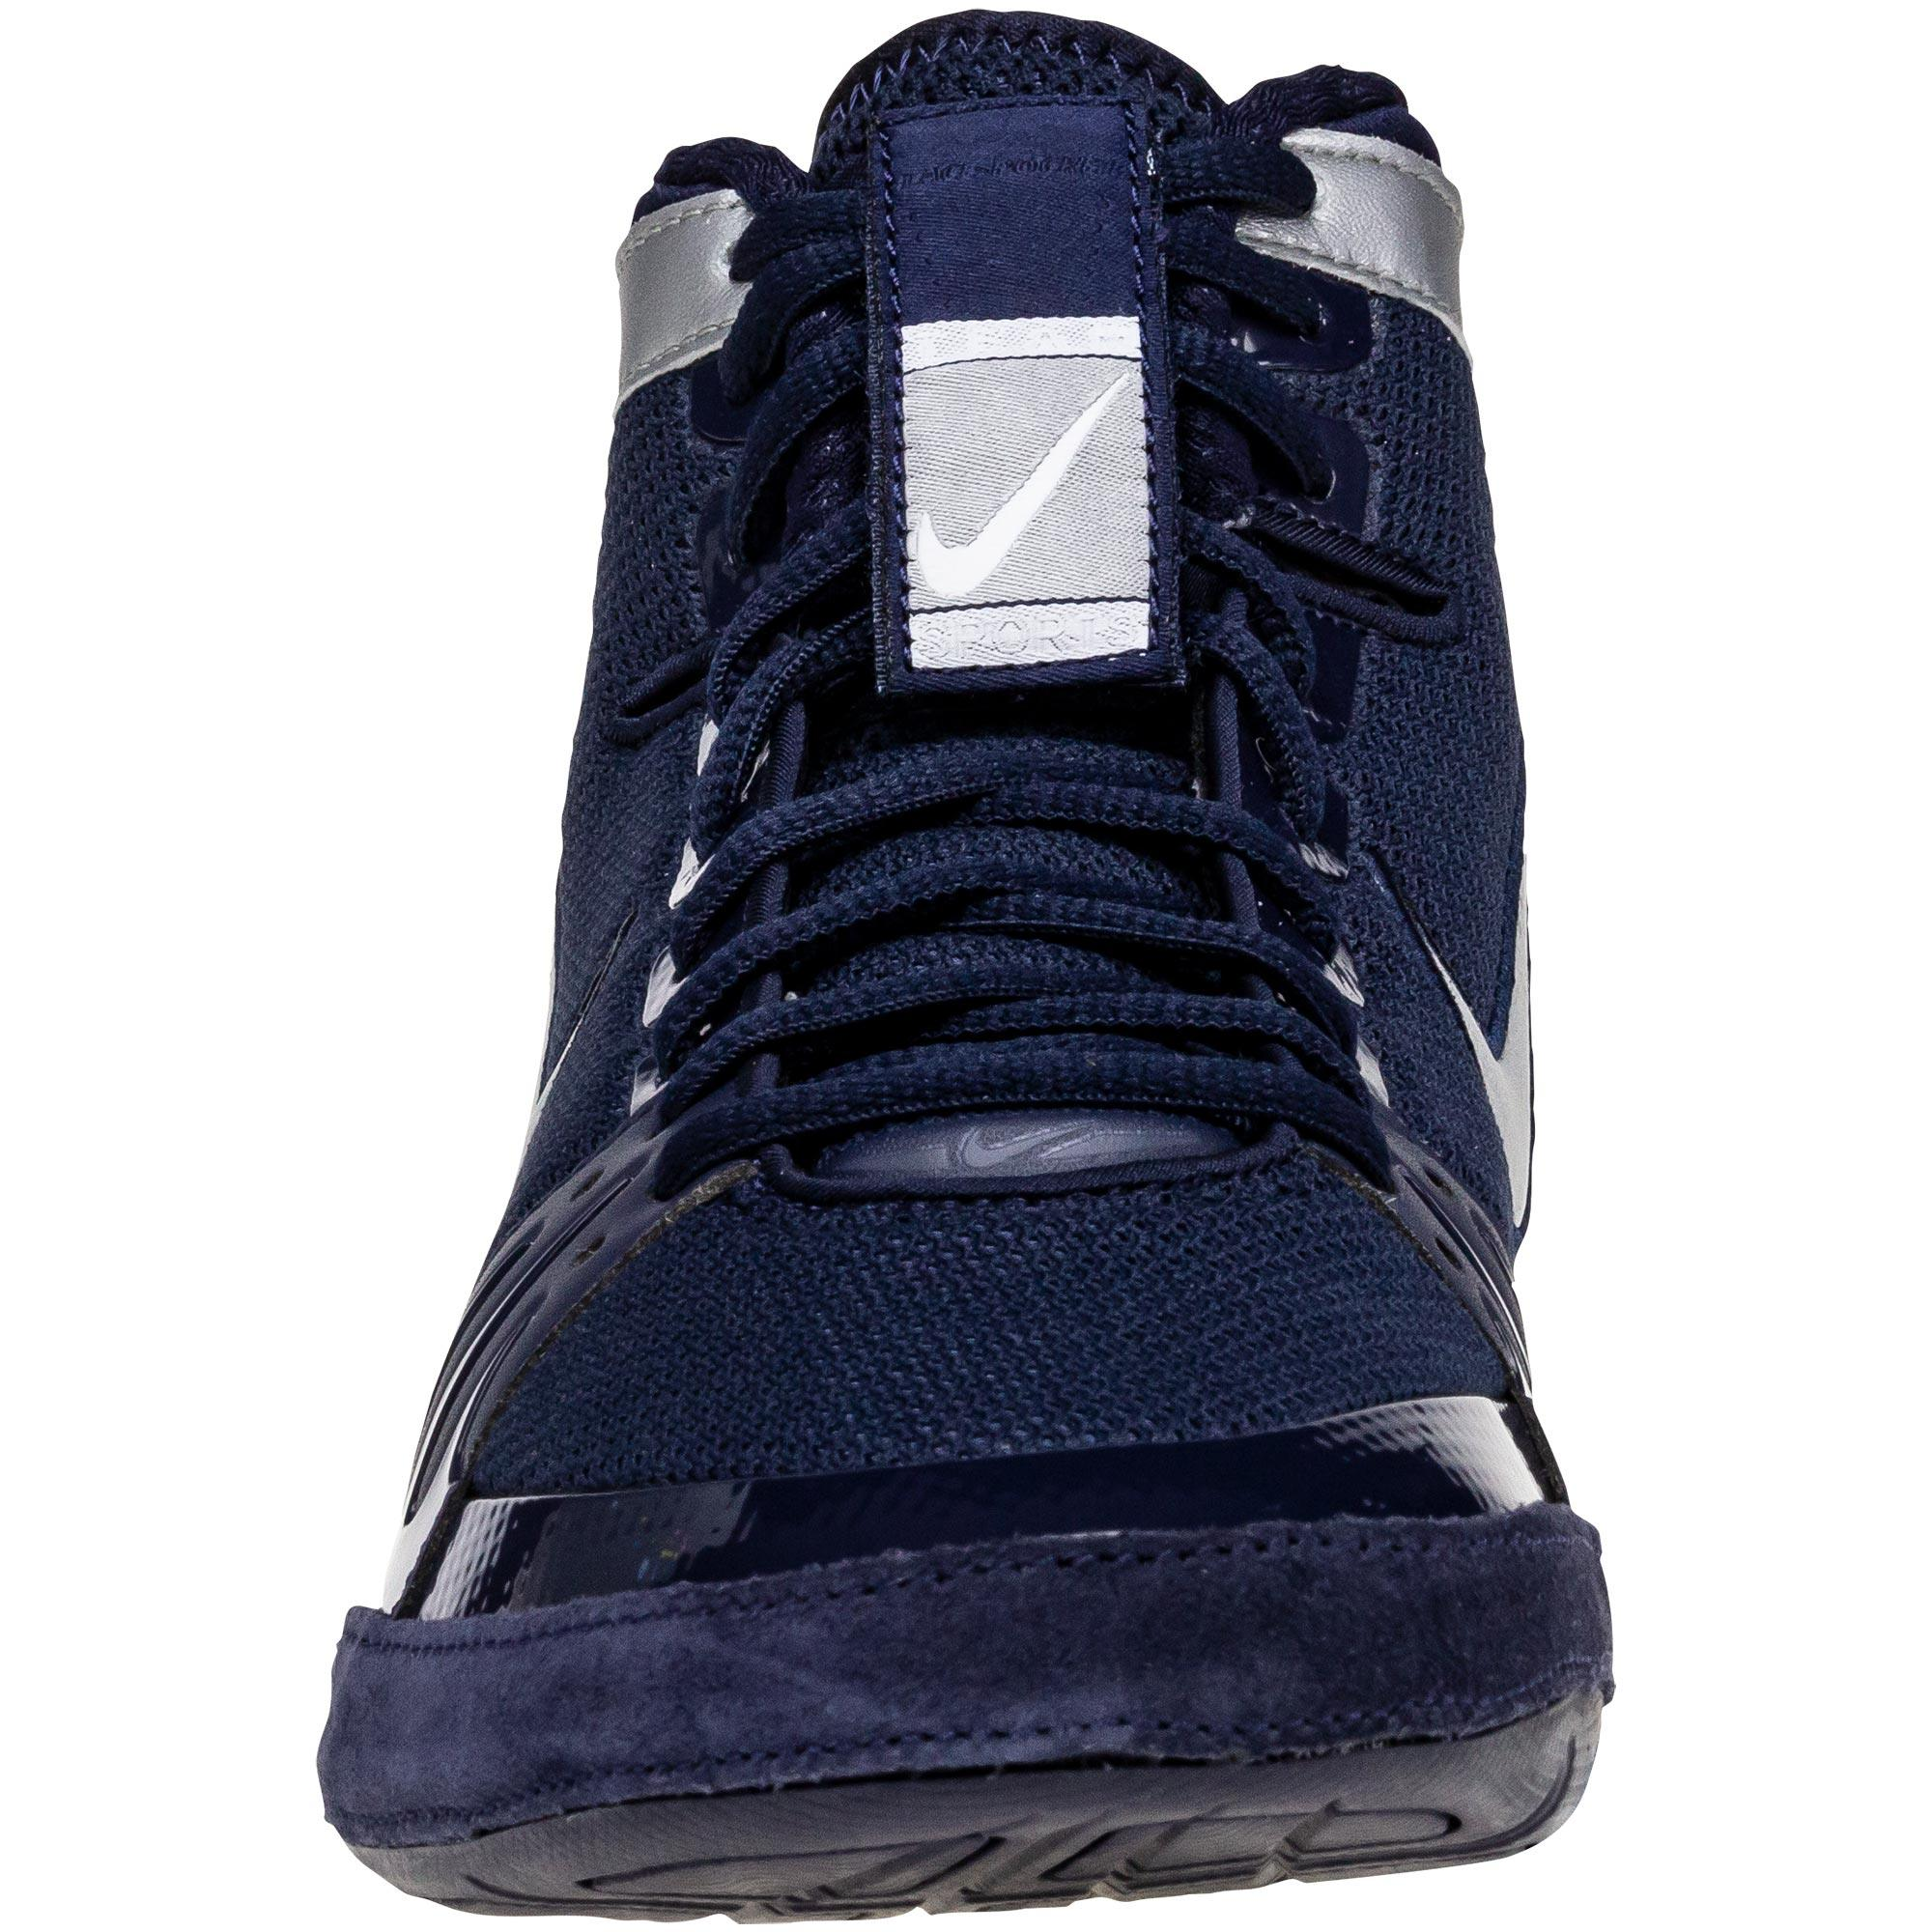 f6980ace6718e0 Nike Grey And Blue Shoes - Wallpaper HD Shoes Hbthenextwave.Org